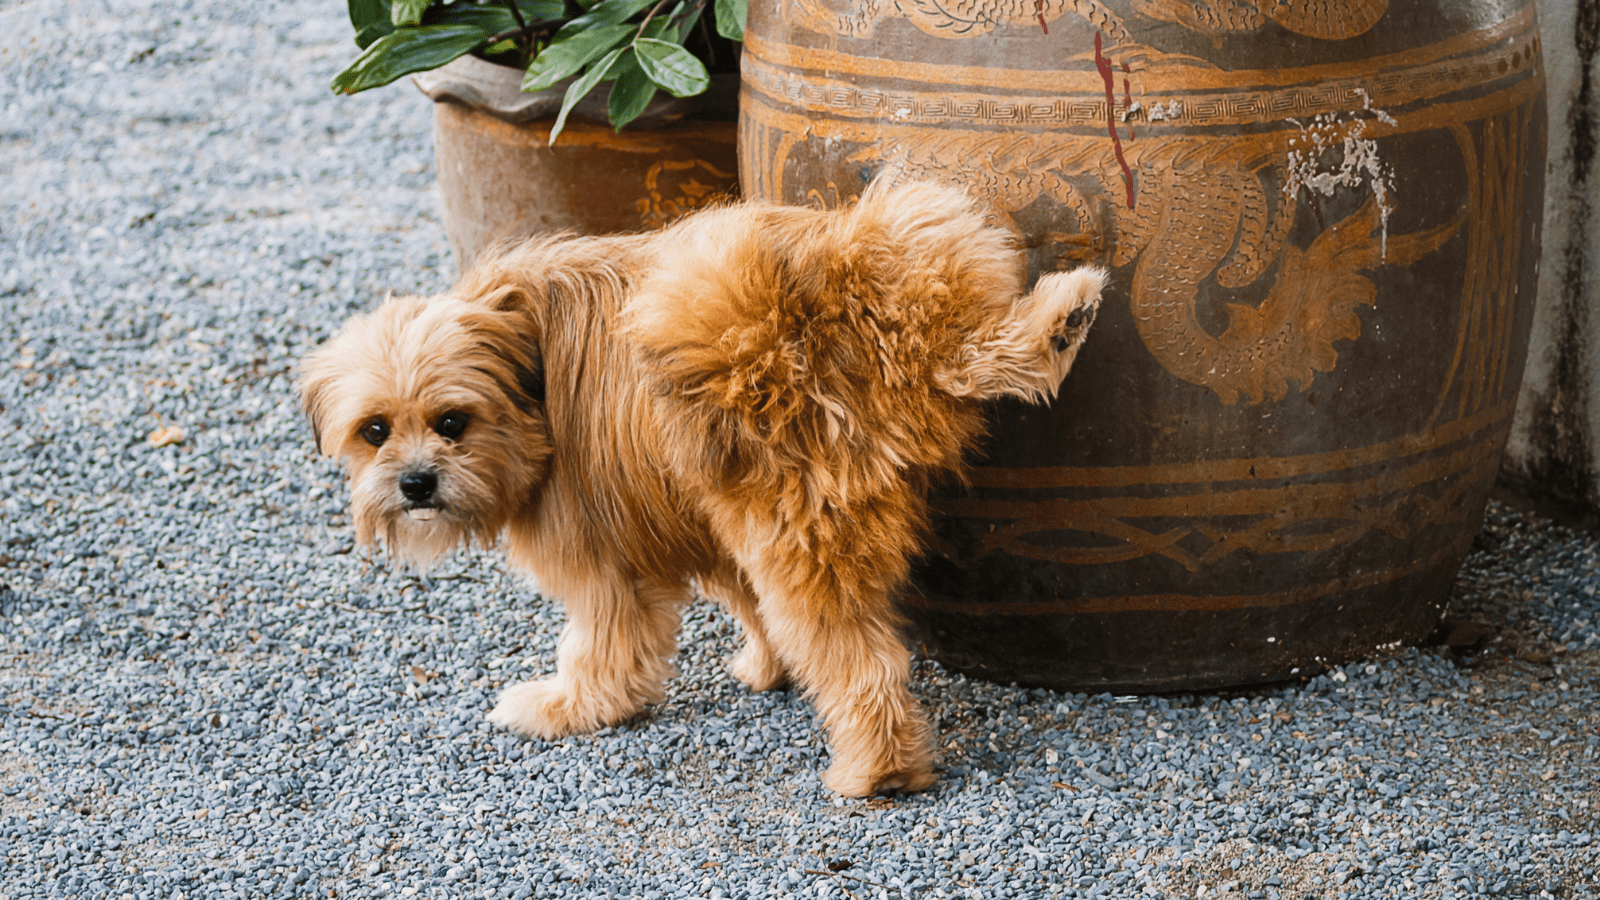 How to get rid of dog urine smell in the house